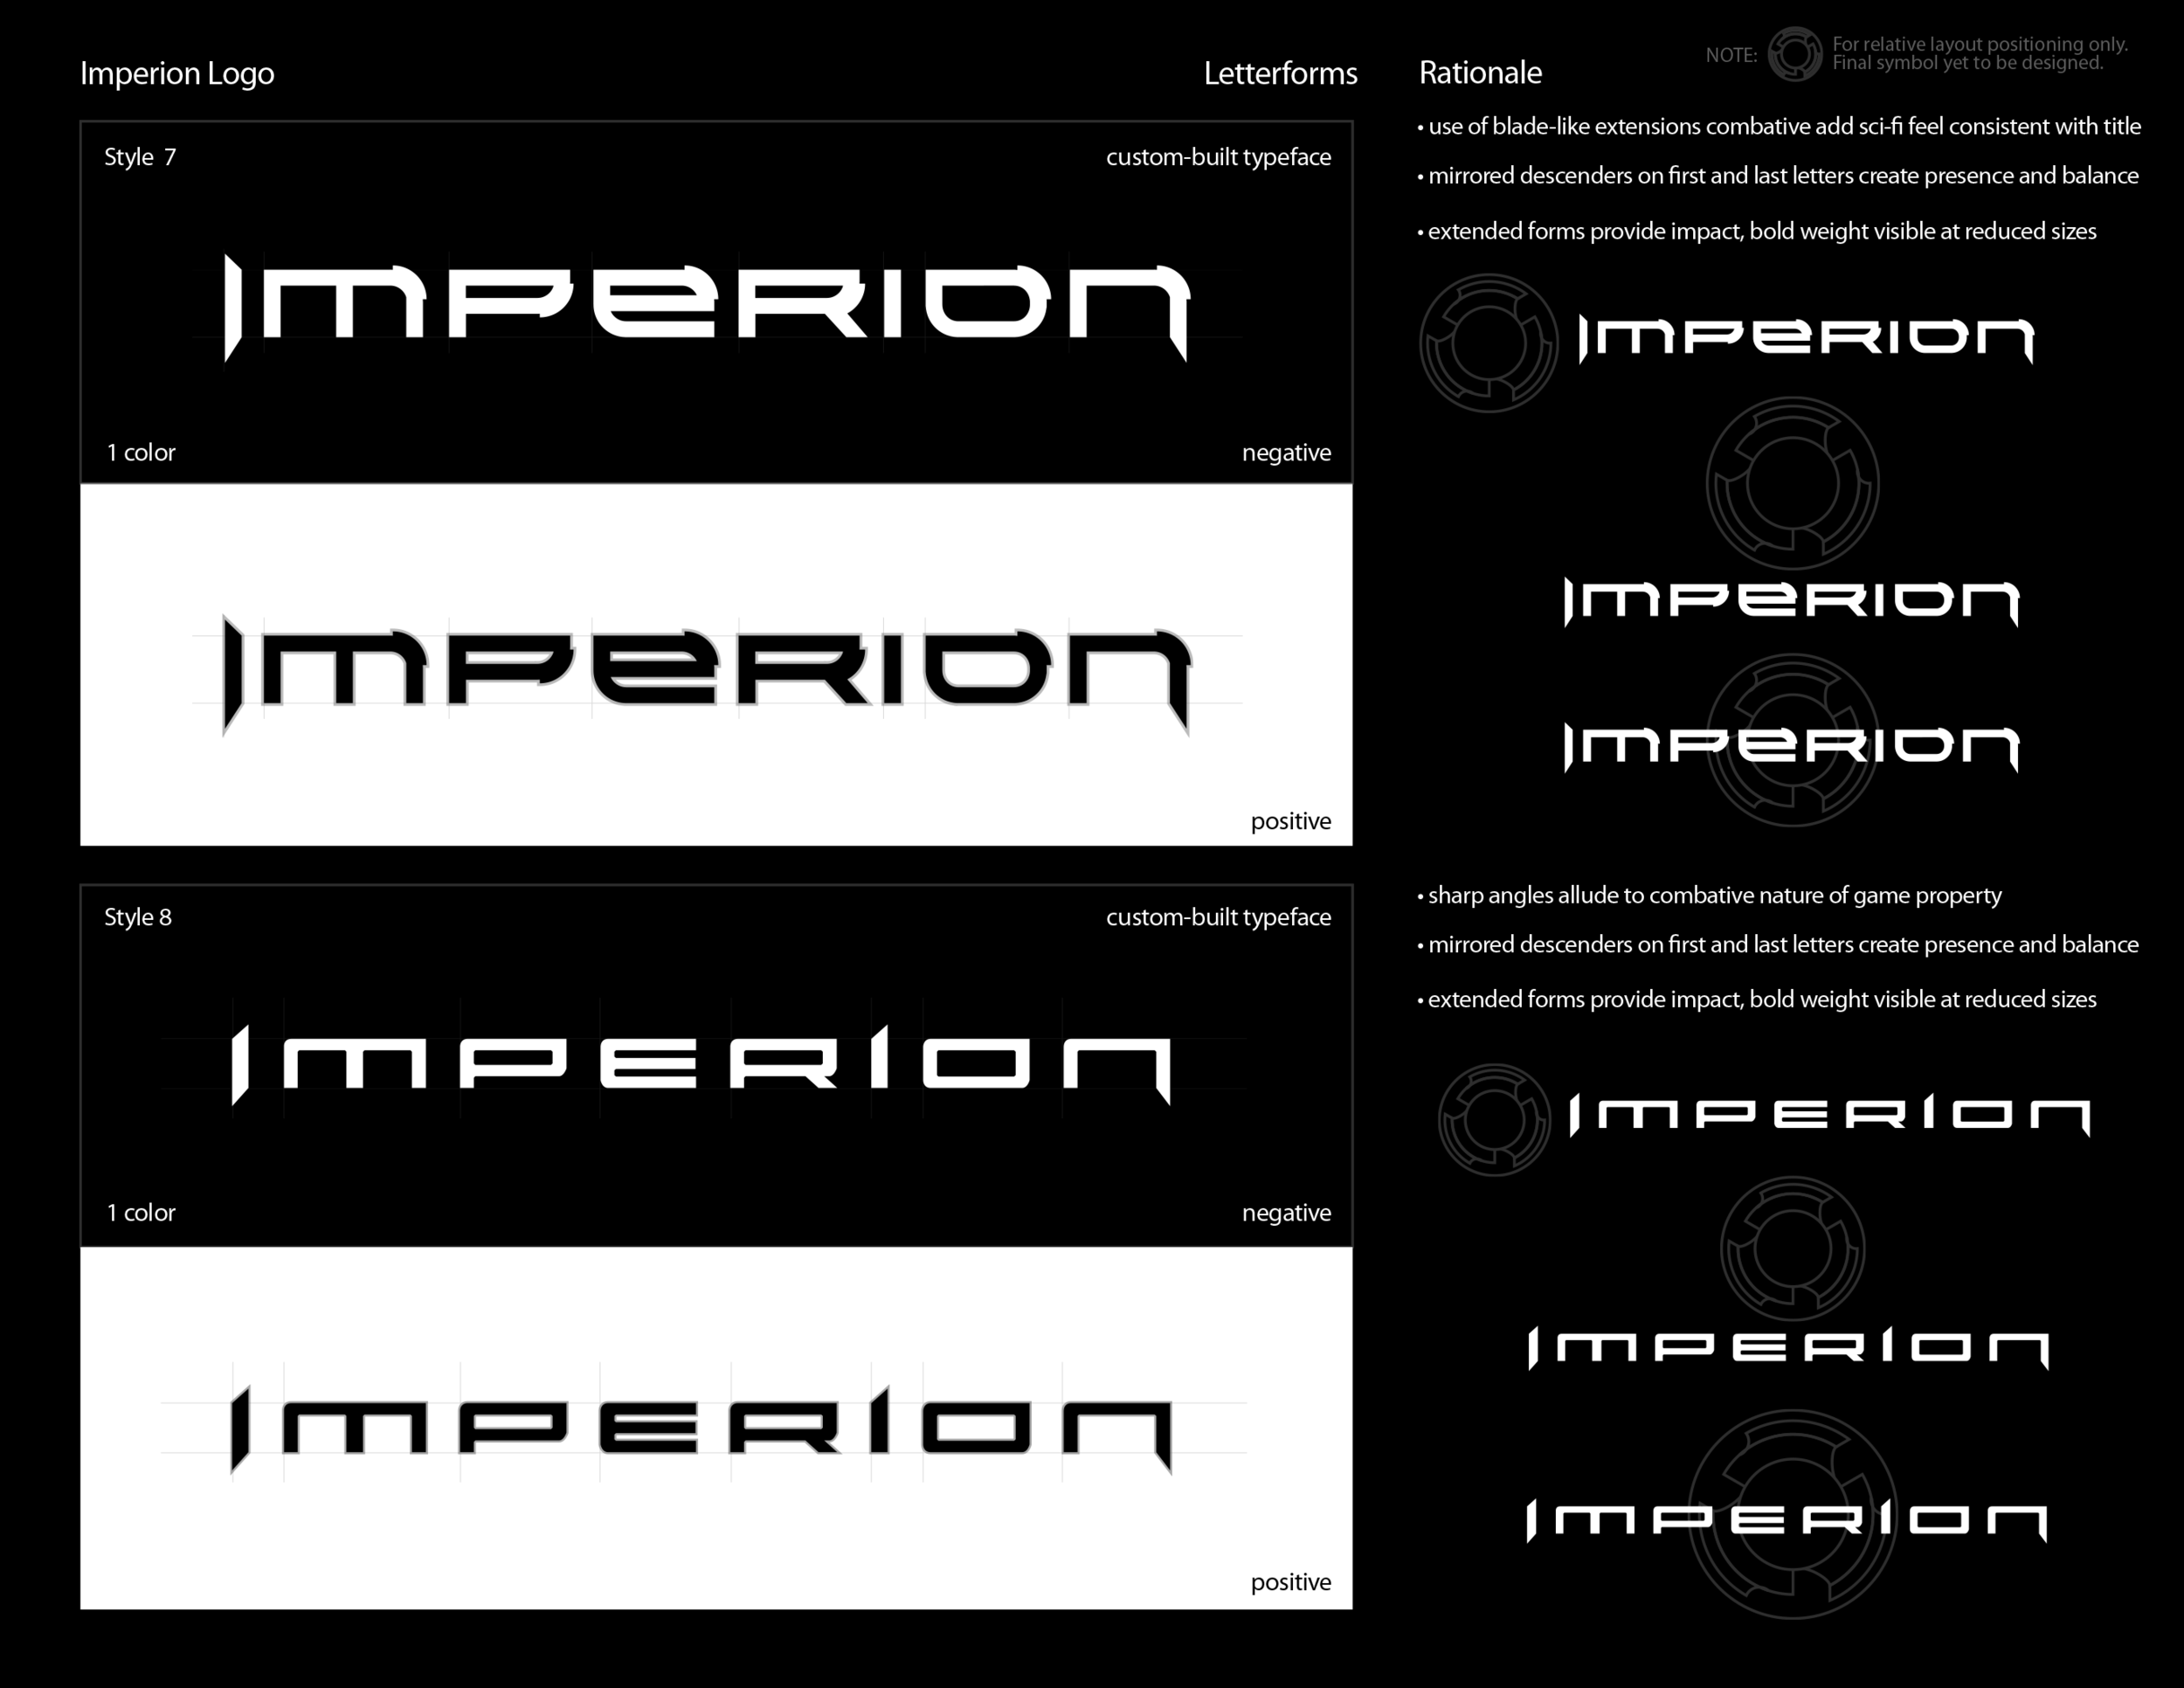 TSF_imperion_logotype-4.png